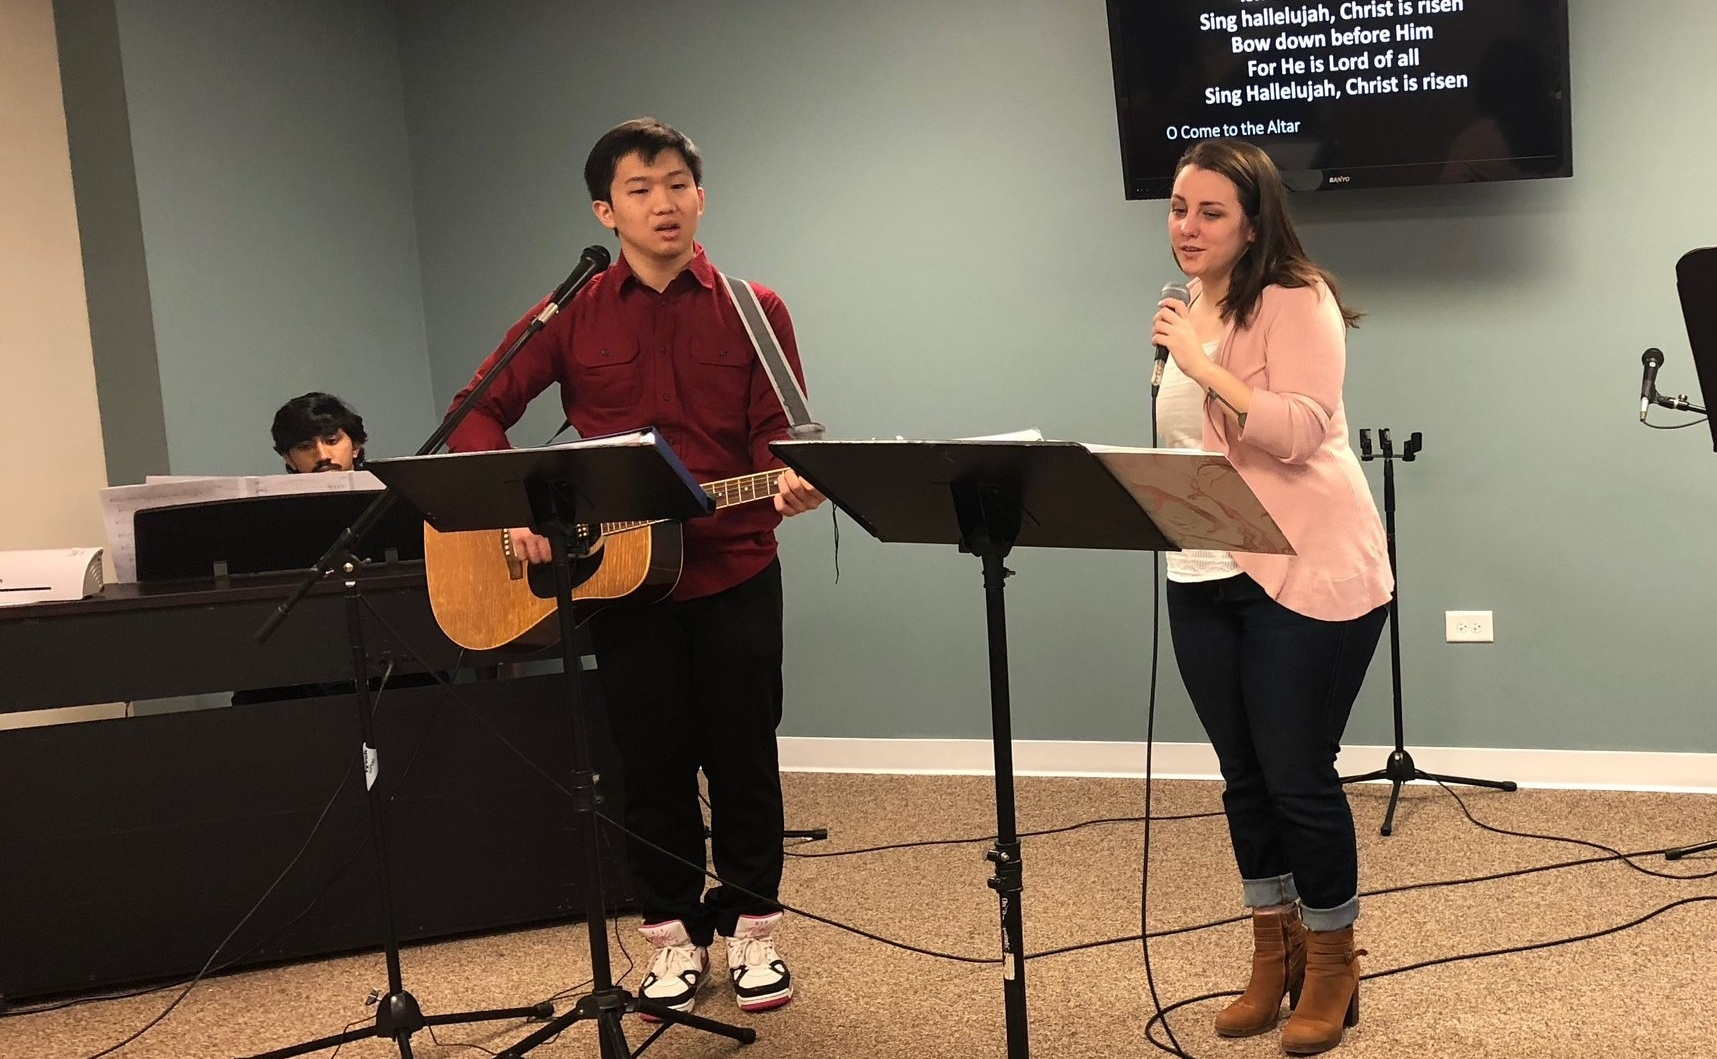 christ centered celebration - Our worship leaders choose hymns and songs that support the preaching of God's word. Our worship team is made up of volunteers who have a heart to serve through music and song.